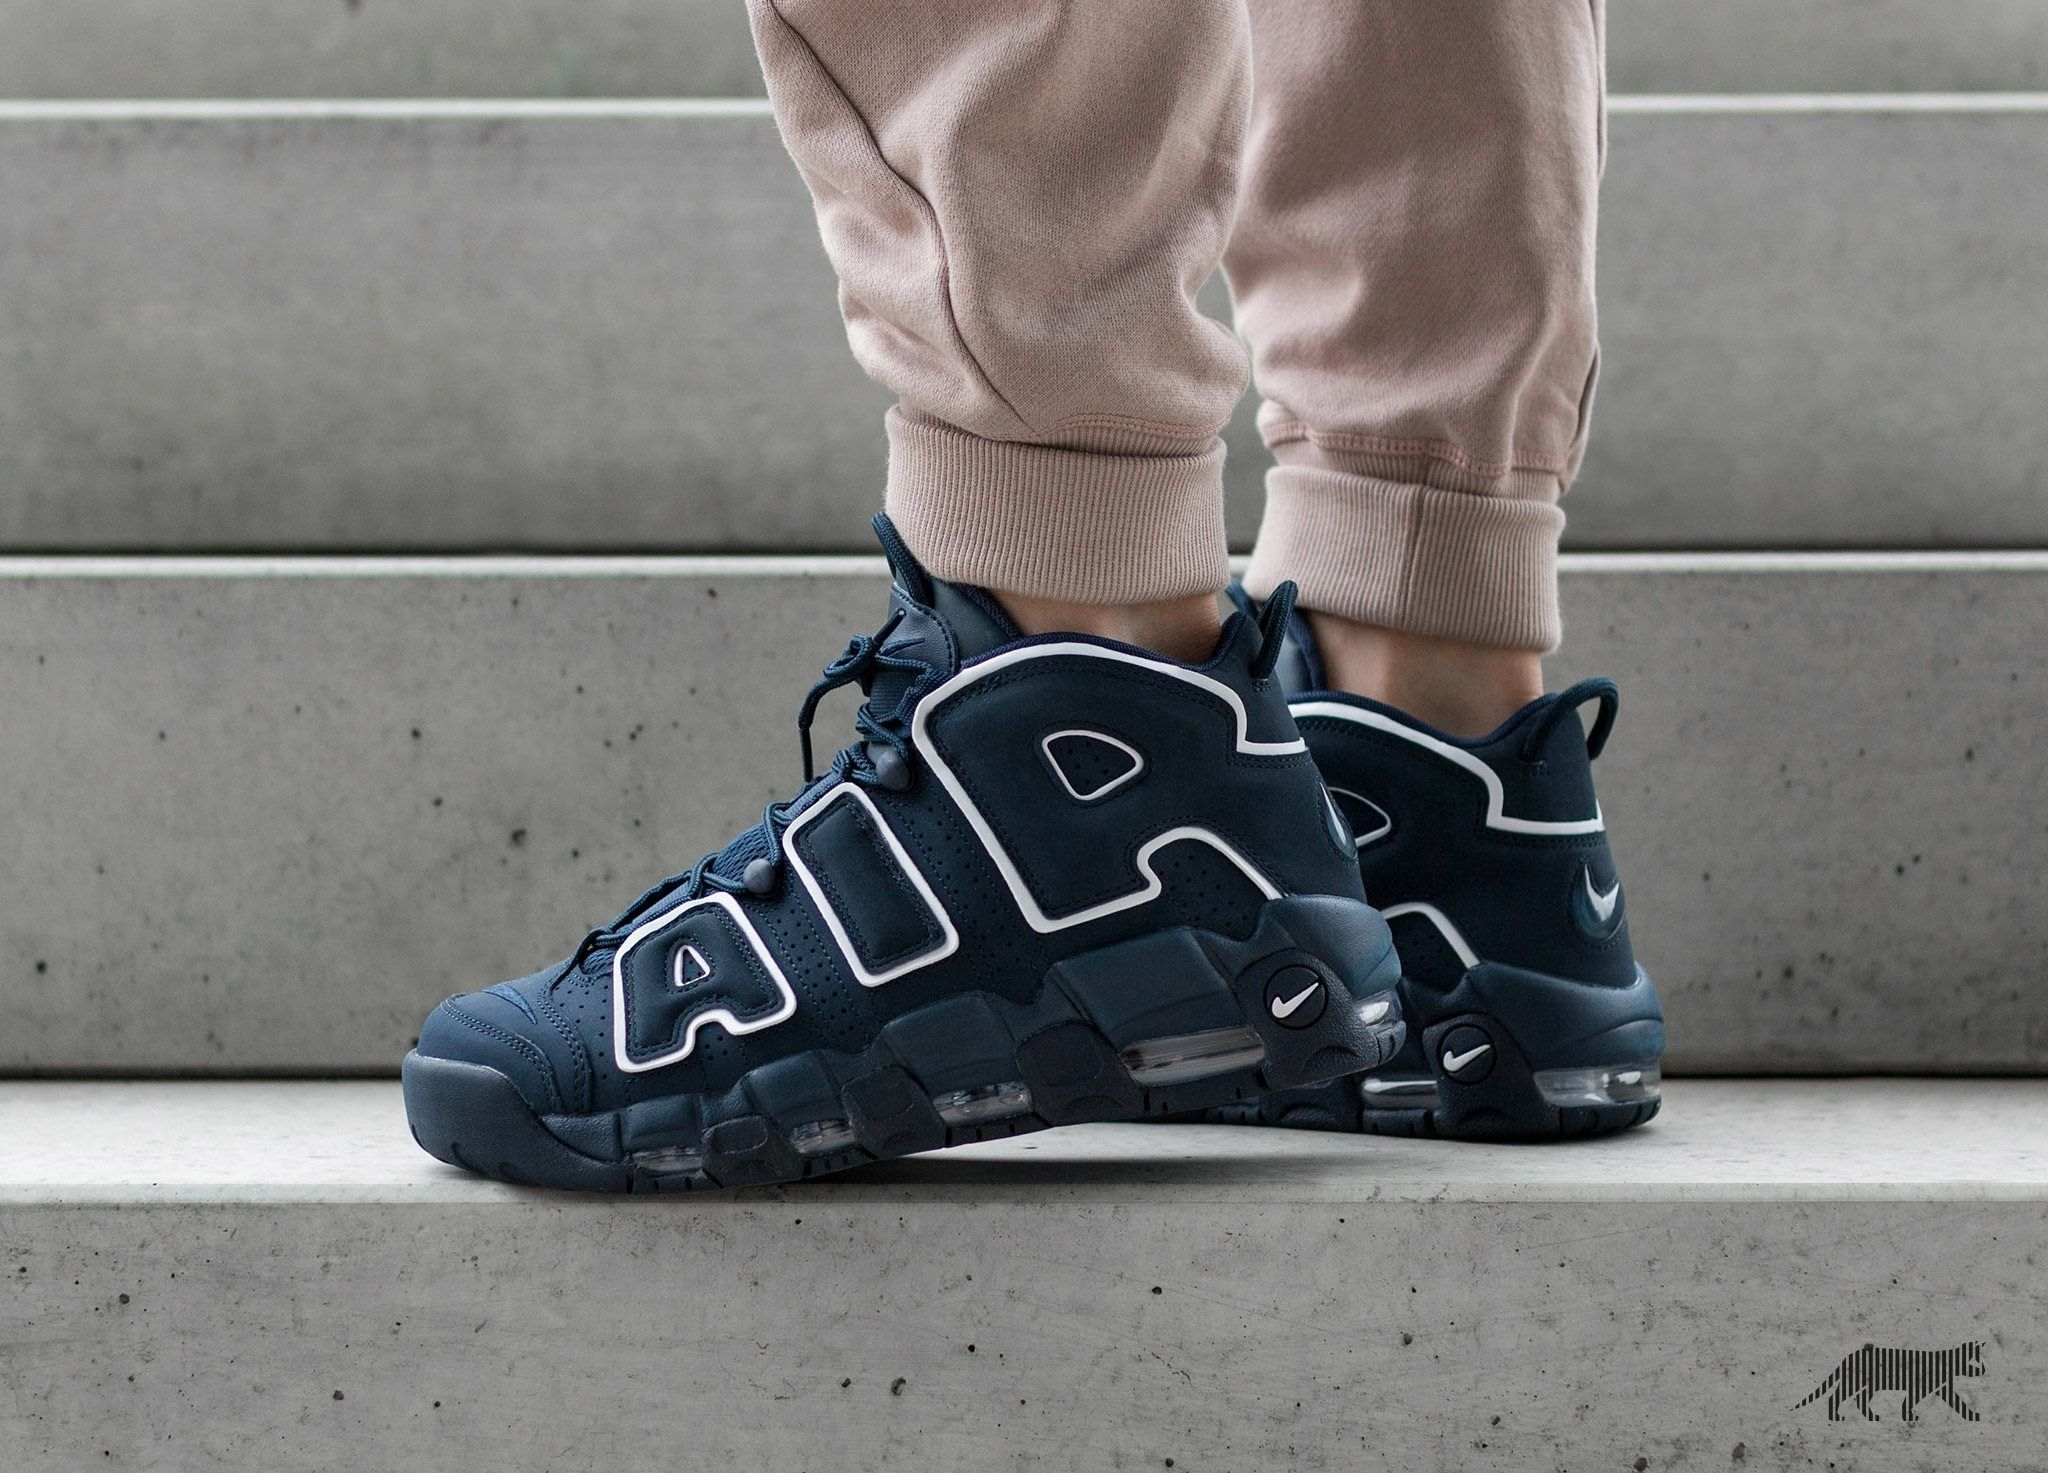 f2d9d9f303 Nike Air More Uptempo: Obsidian | shoes | Shoes, Shoes sneakers, Nike